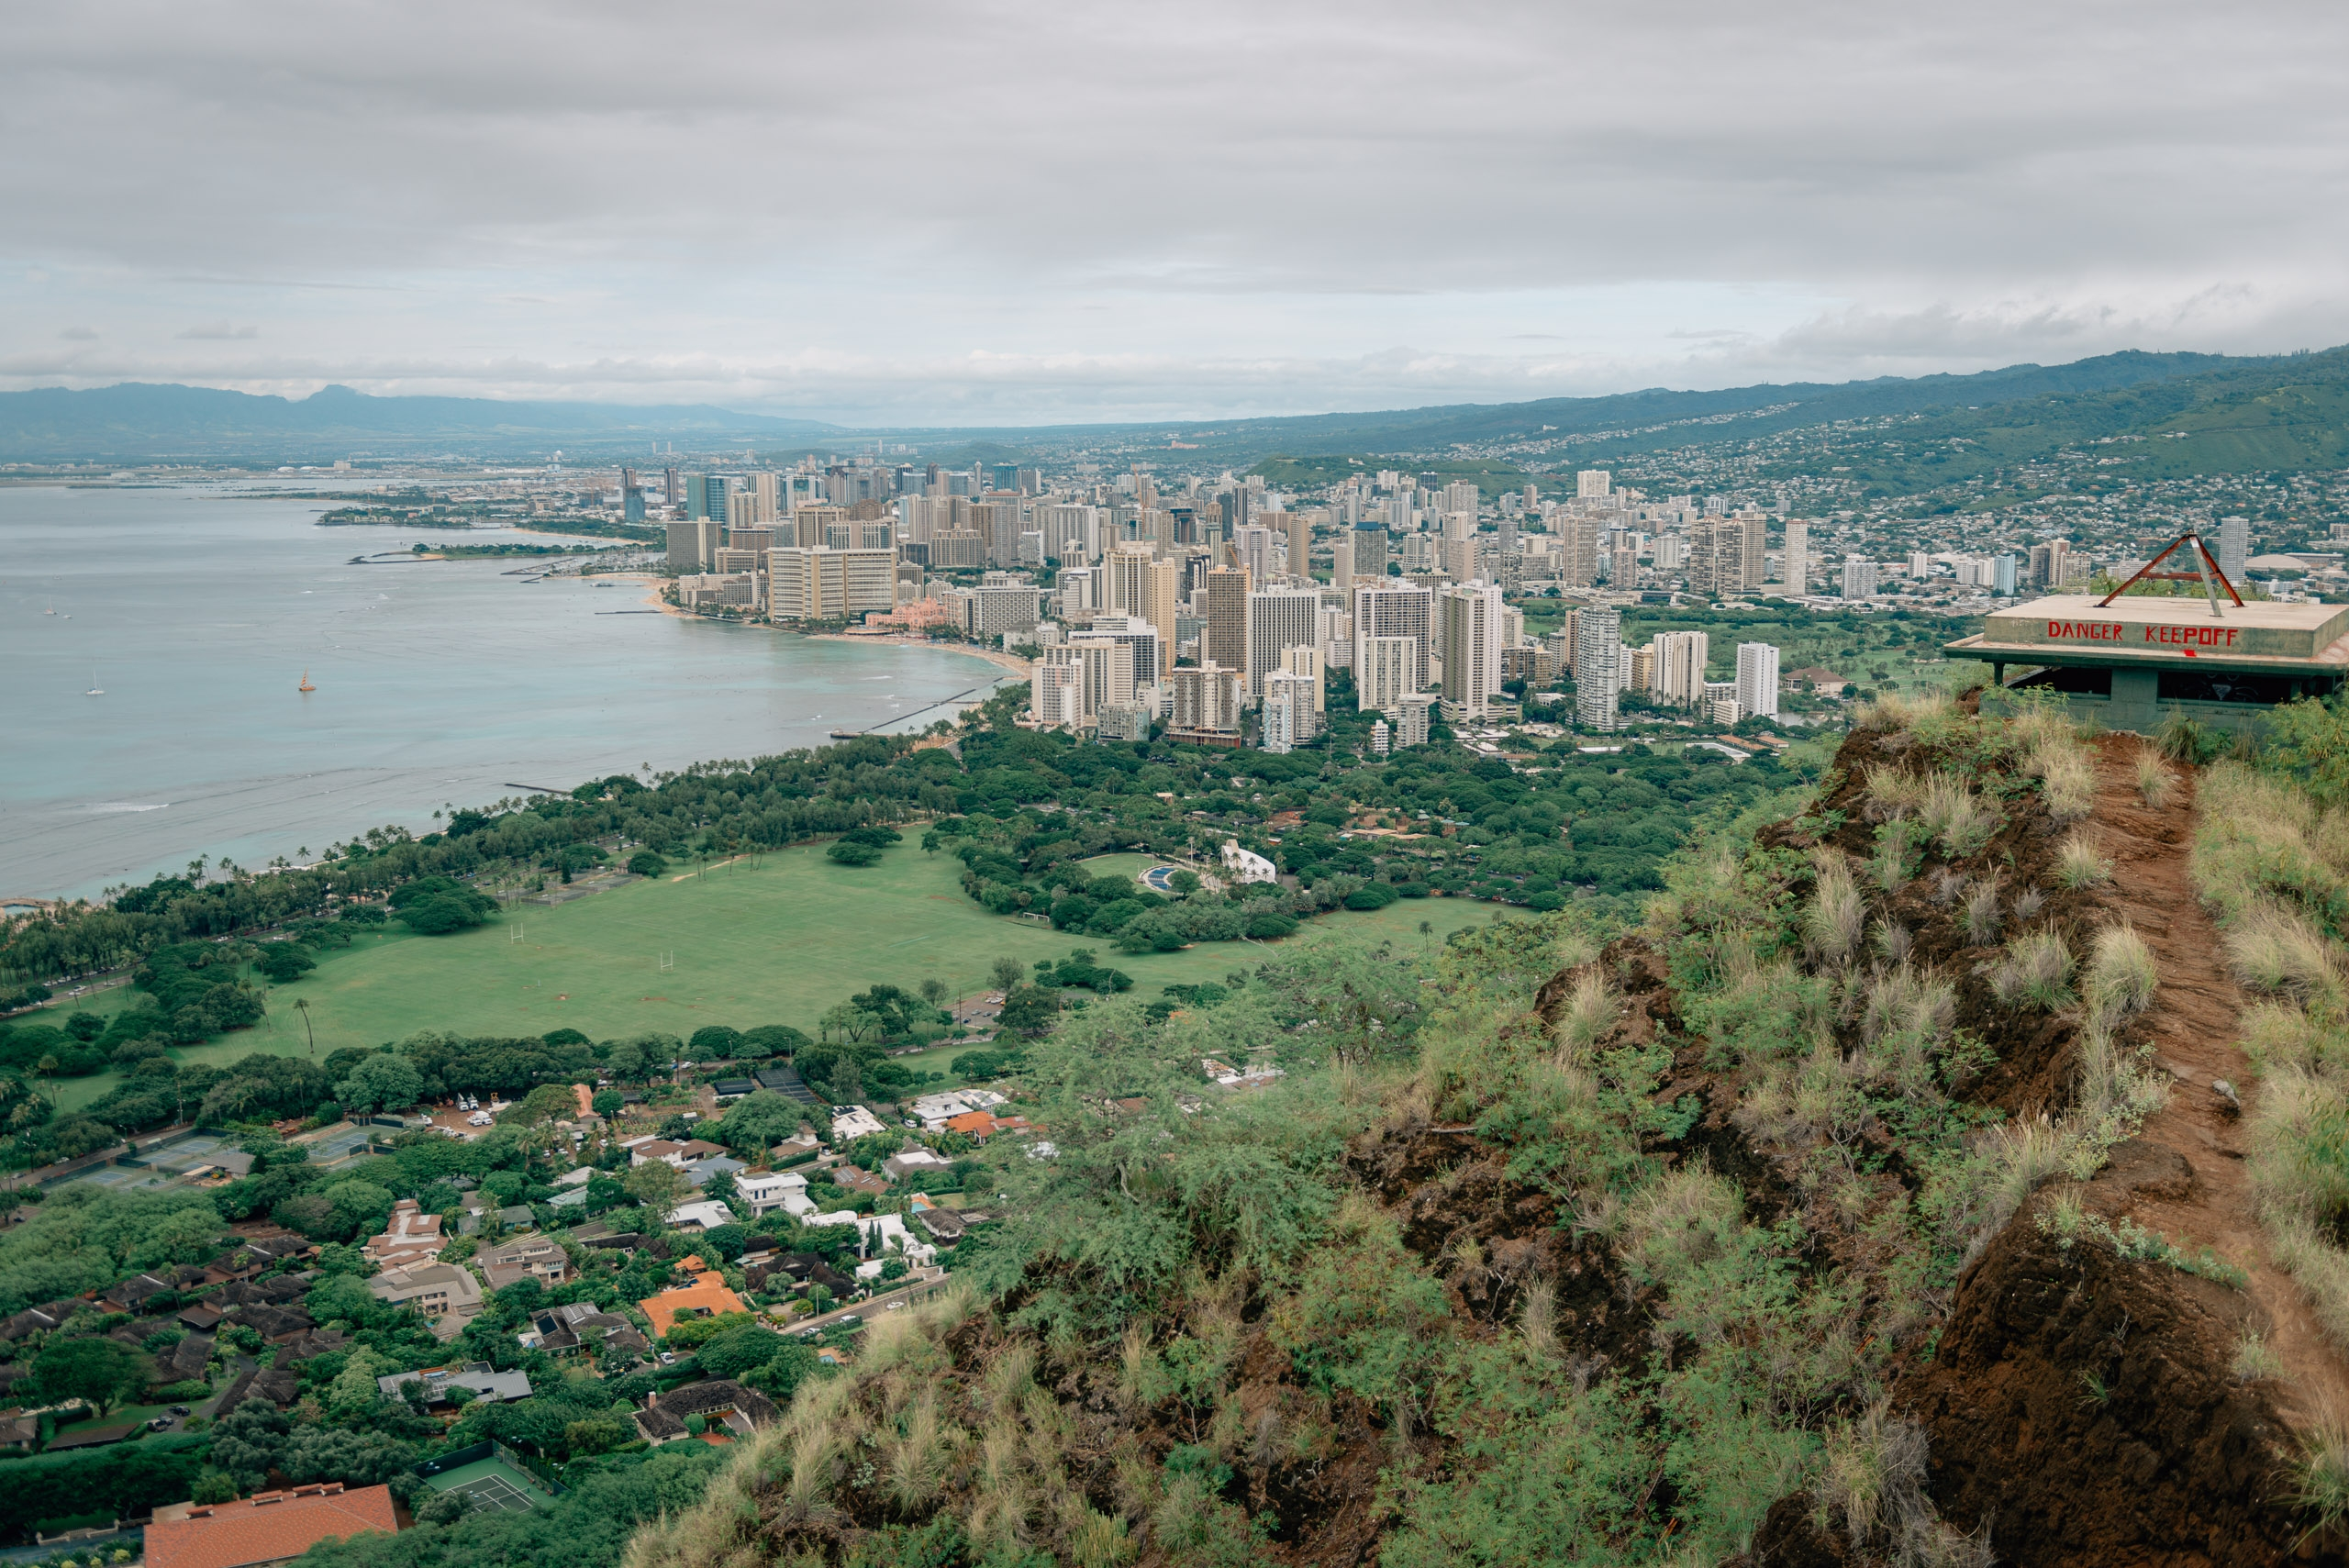 The View from the Top of Diamond Head